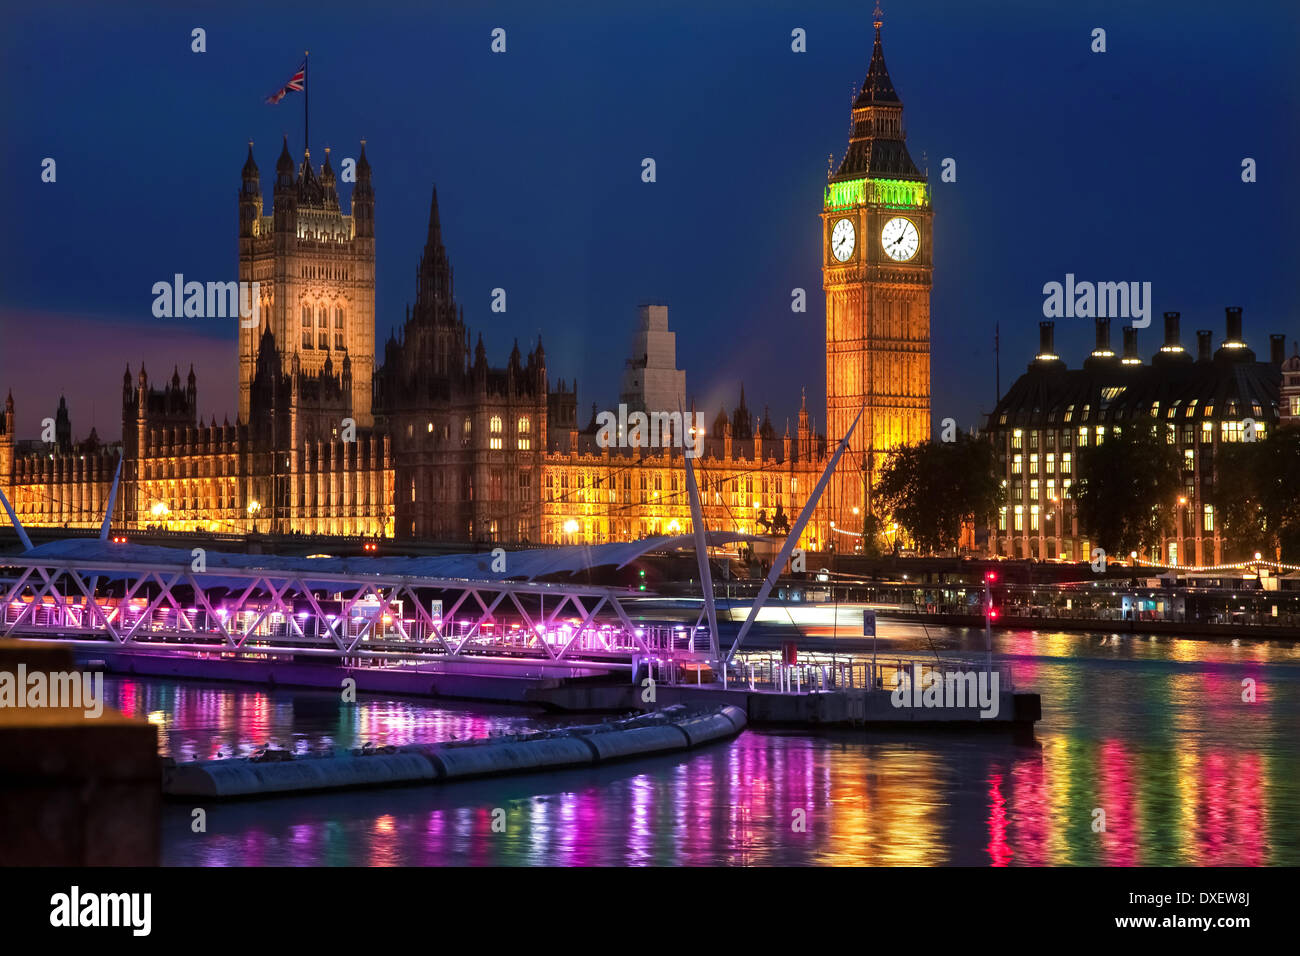 Houses of Parliment and Big ben from the south bank, London, England, UK - Stock Image